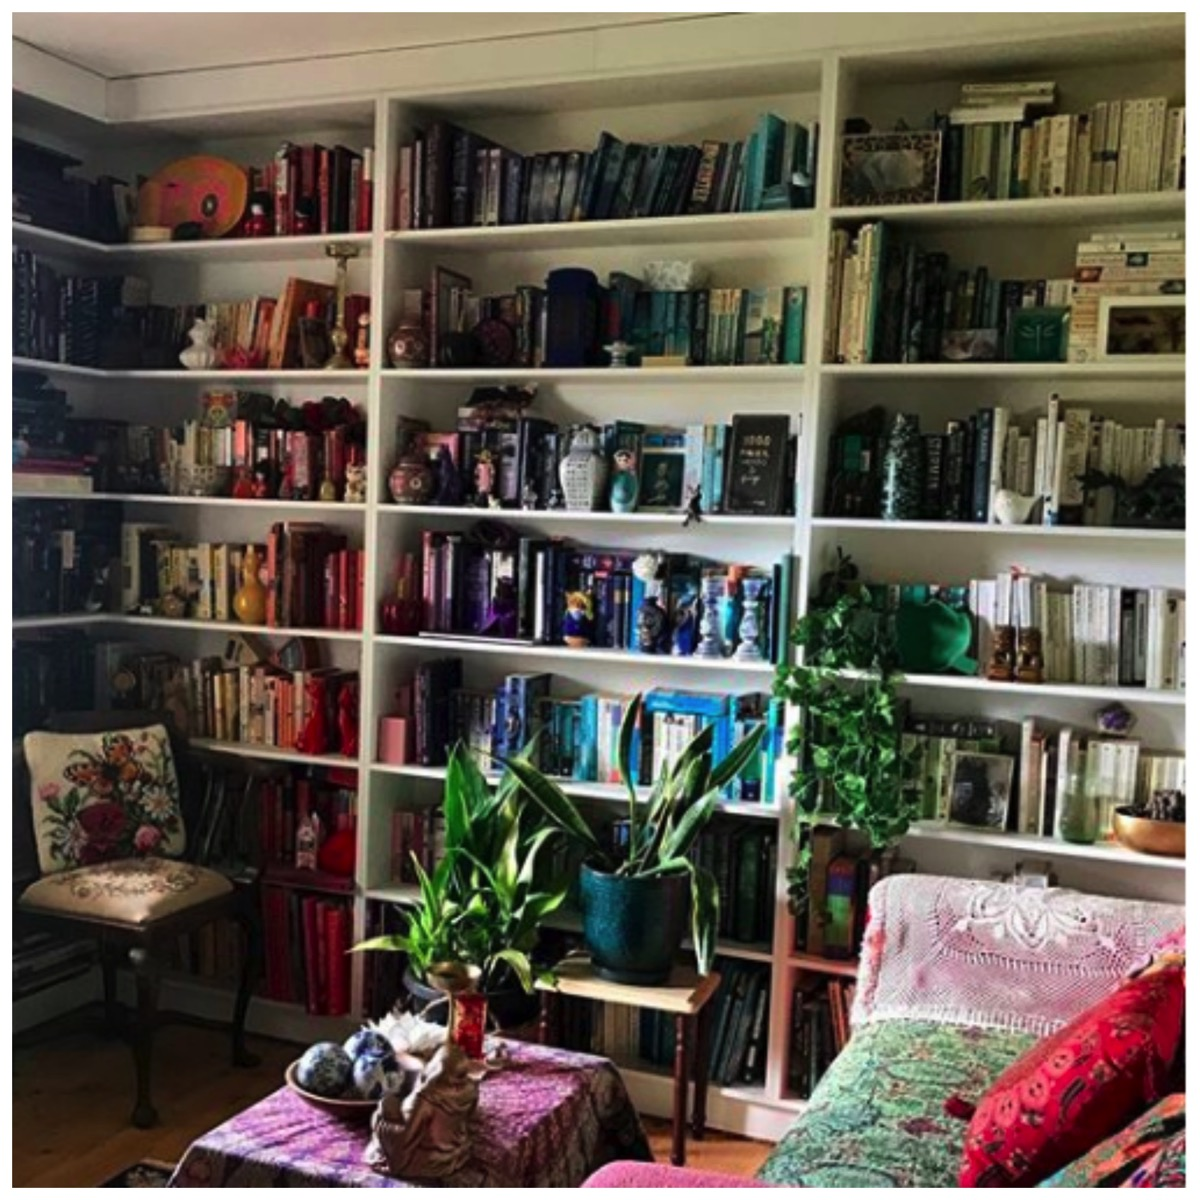 Color organized bookshelf in home